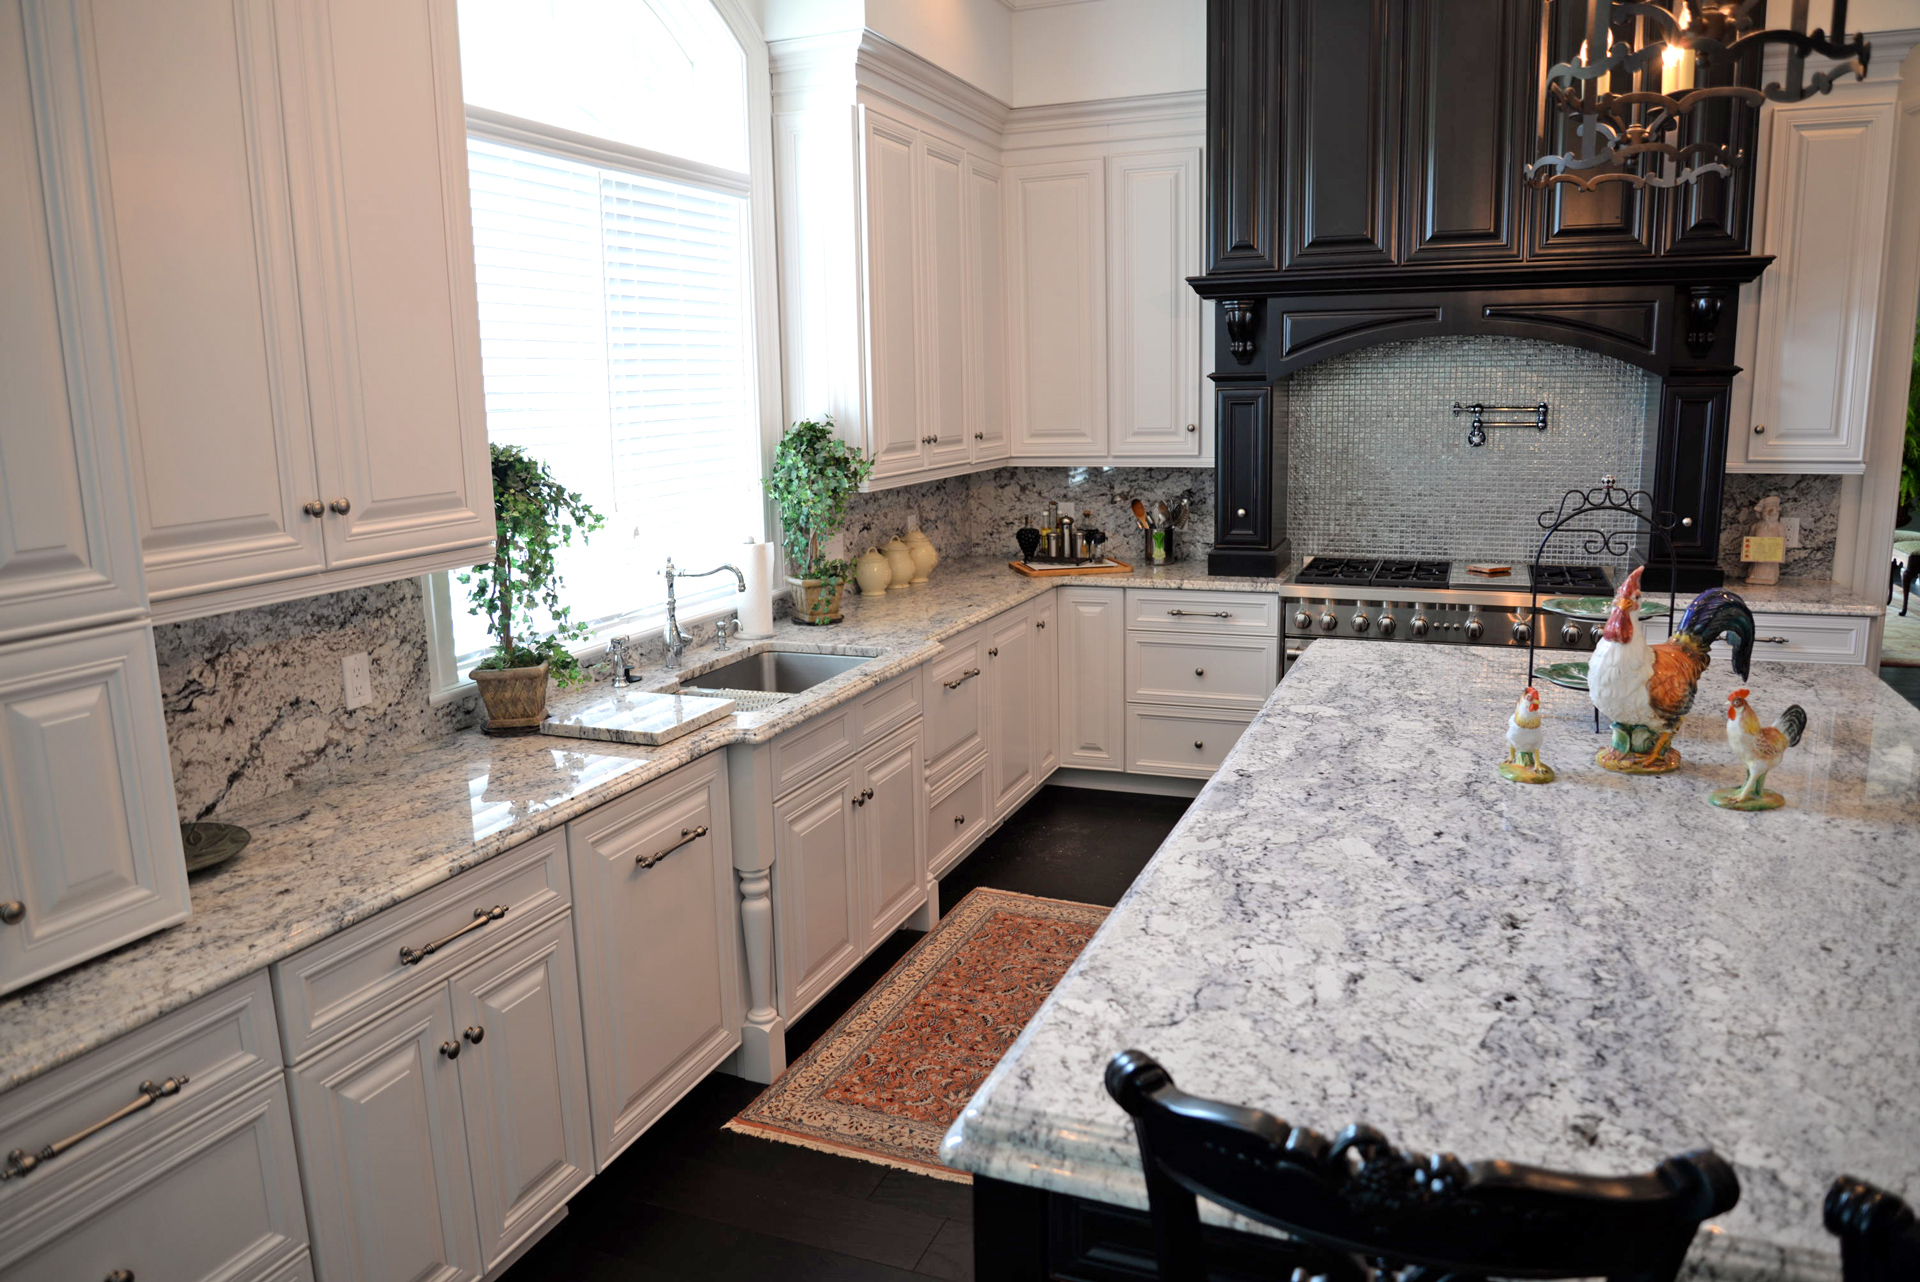 Popular Granite Countertop Configurations Orlando: Kitchen Island Configurations: Granite Countertops For